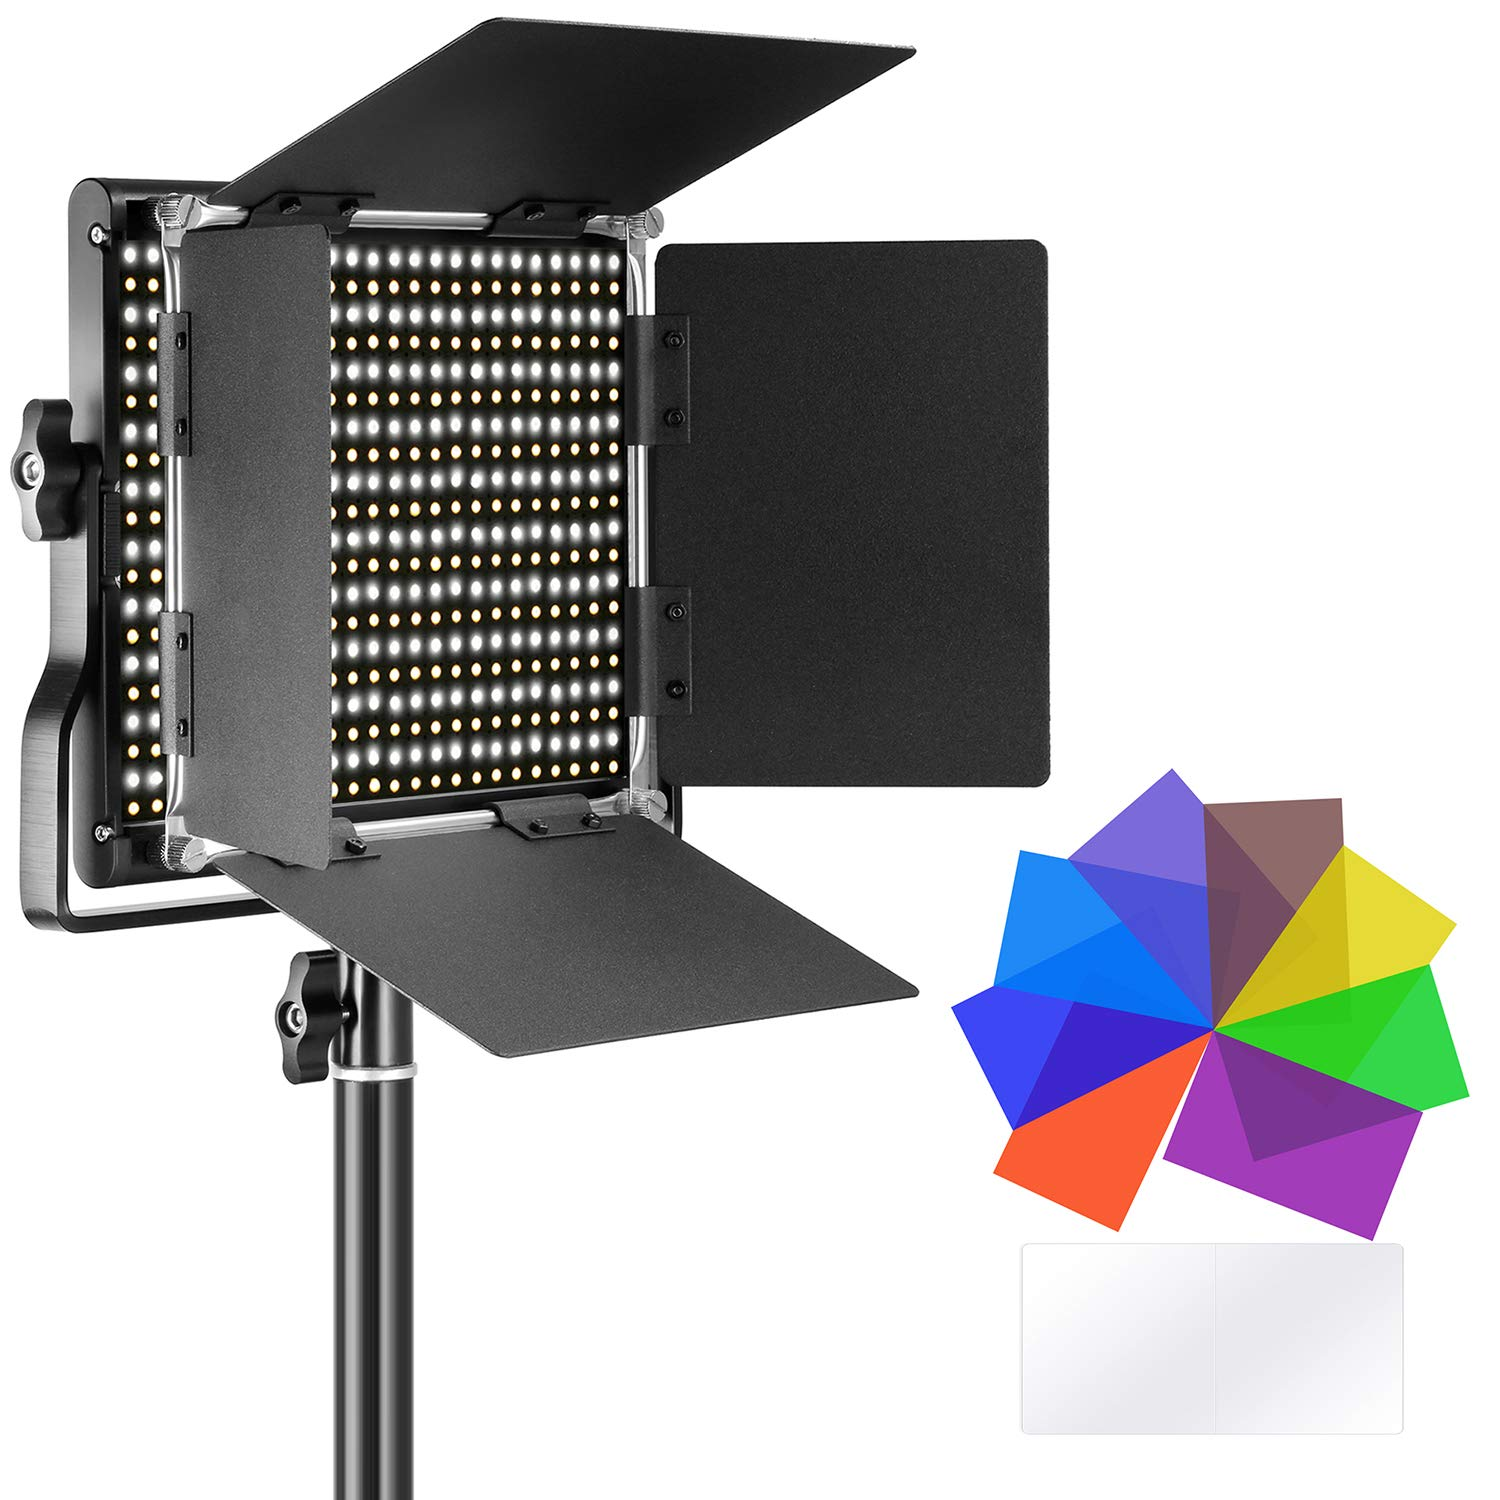 Neewer Bi-Color 660 LED Video Light with 8-Pack Lighting Color Filters, Dimmable 660 Beads with U Bracket and Barndoor, 3200-5600K, CRI 96+ for Studio, YouTube, Product Portrait Photography